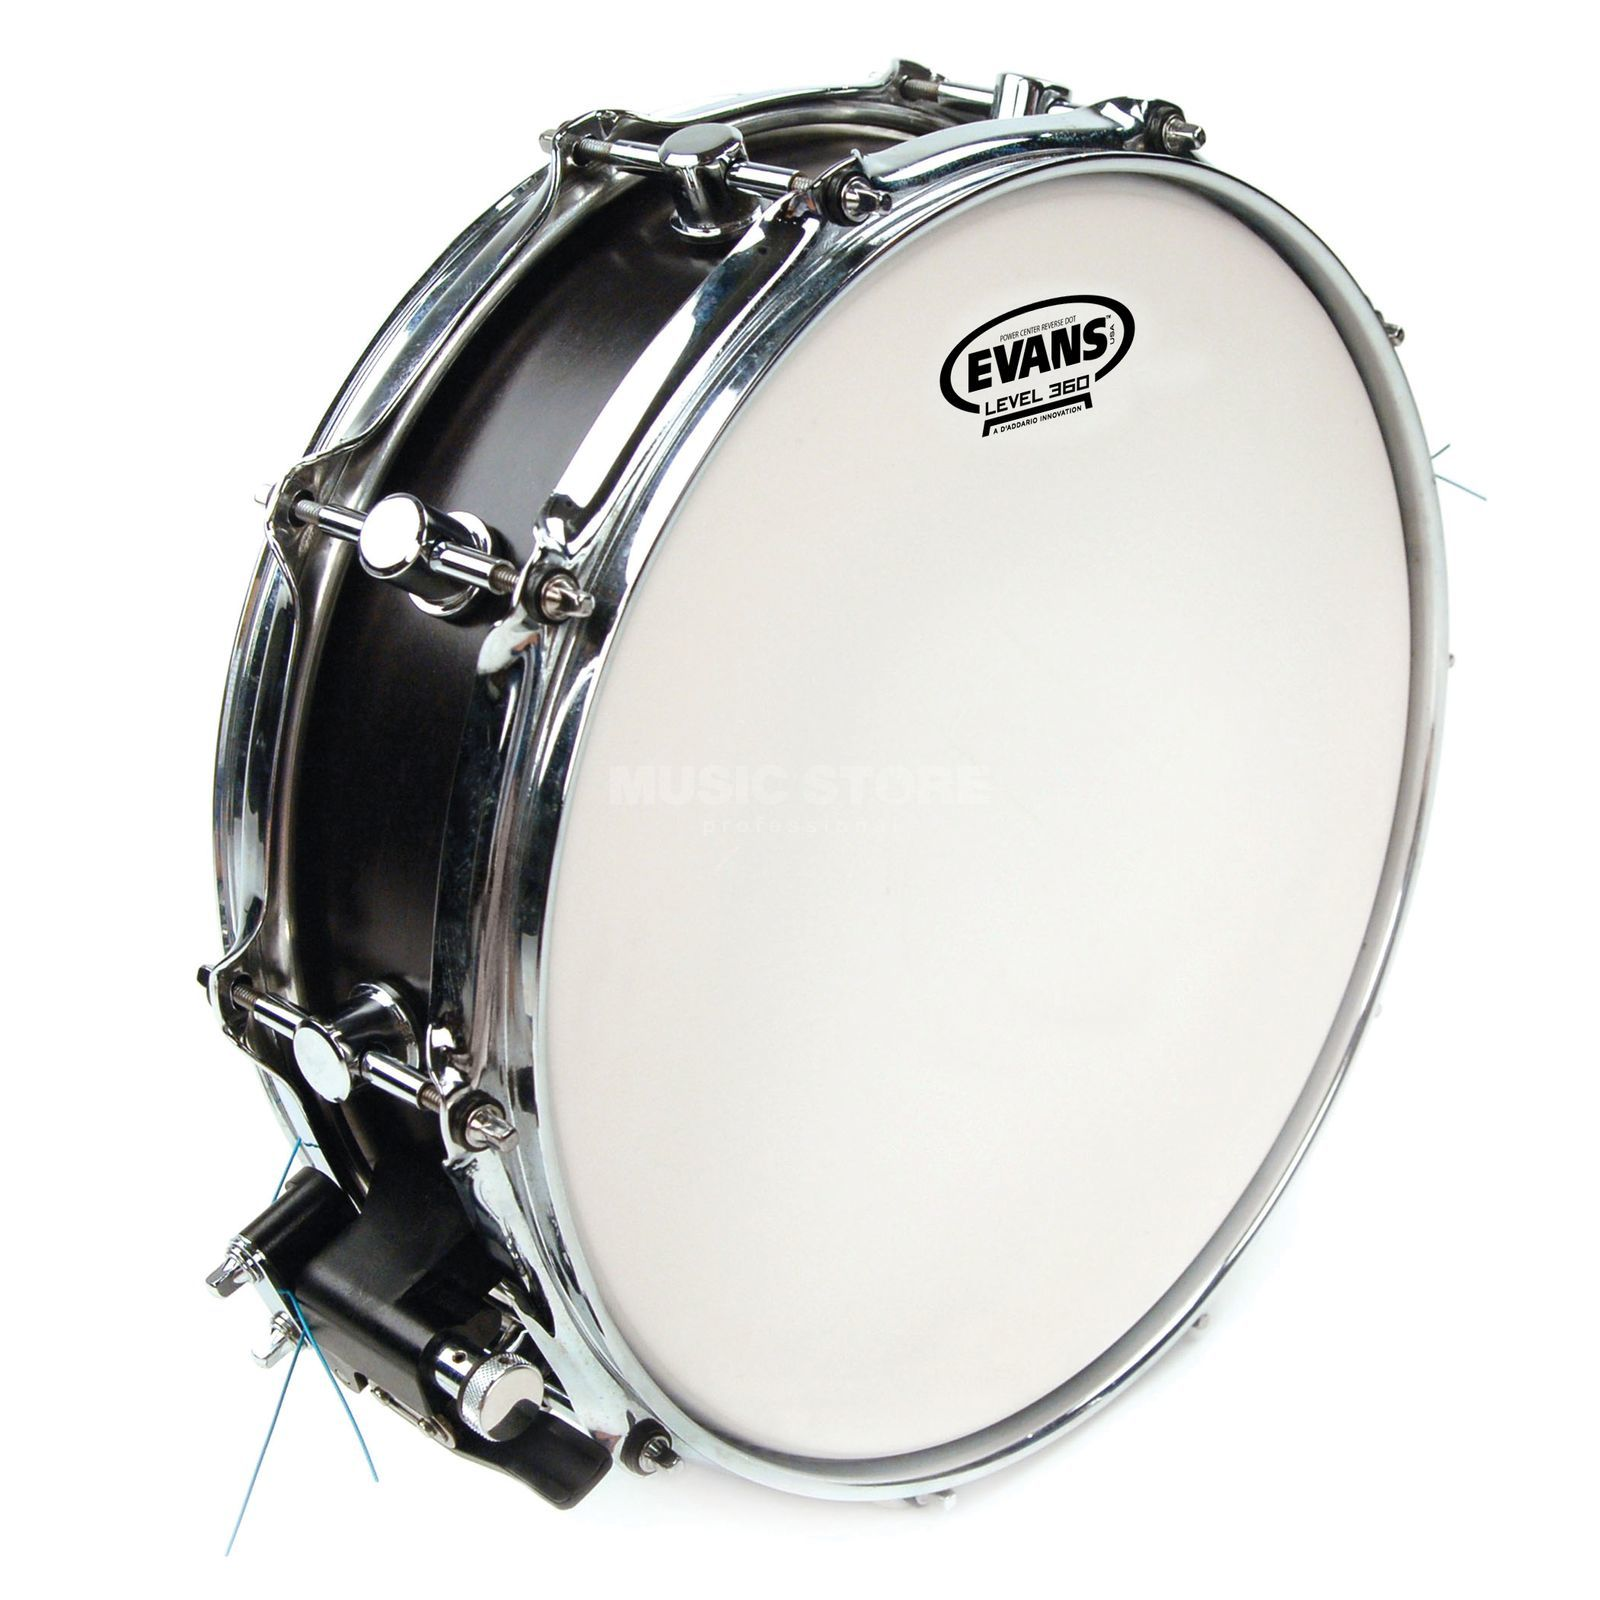 "Evans Power Center 12"", B12G1RD, Reverse Dot, Snare Batter Immagine prodotto"